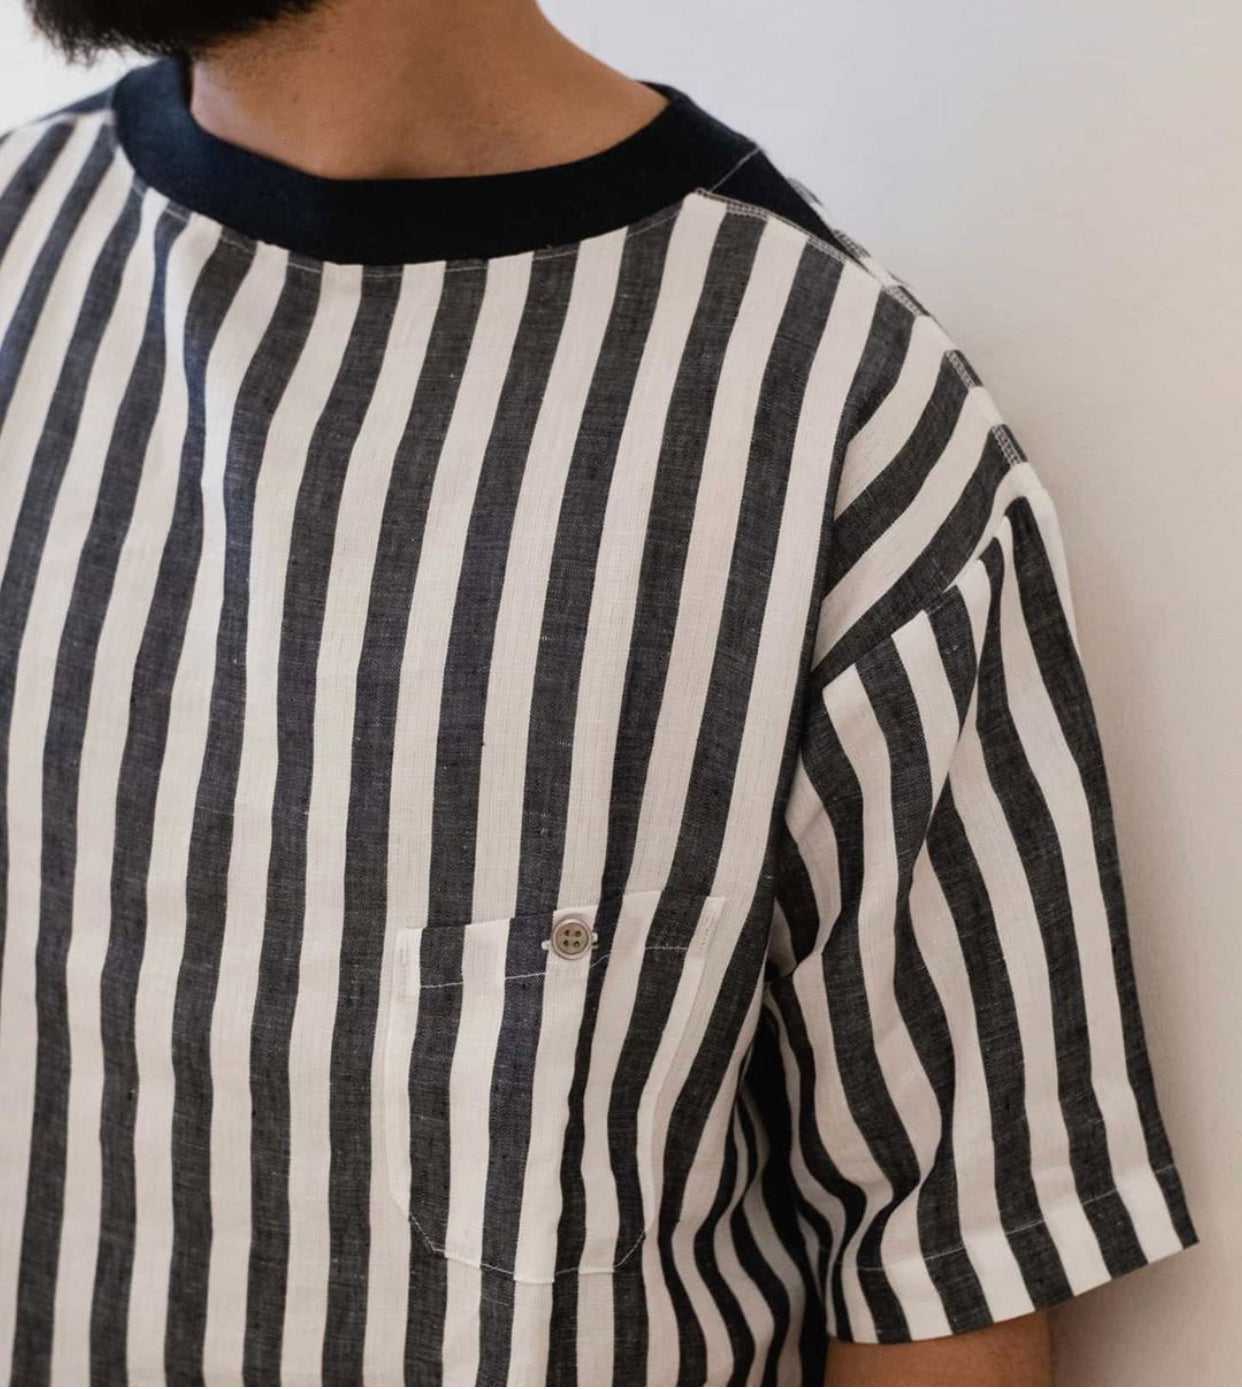 Big Pocket T Linen Stripes, Nigel Cabourn - The Signet Store